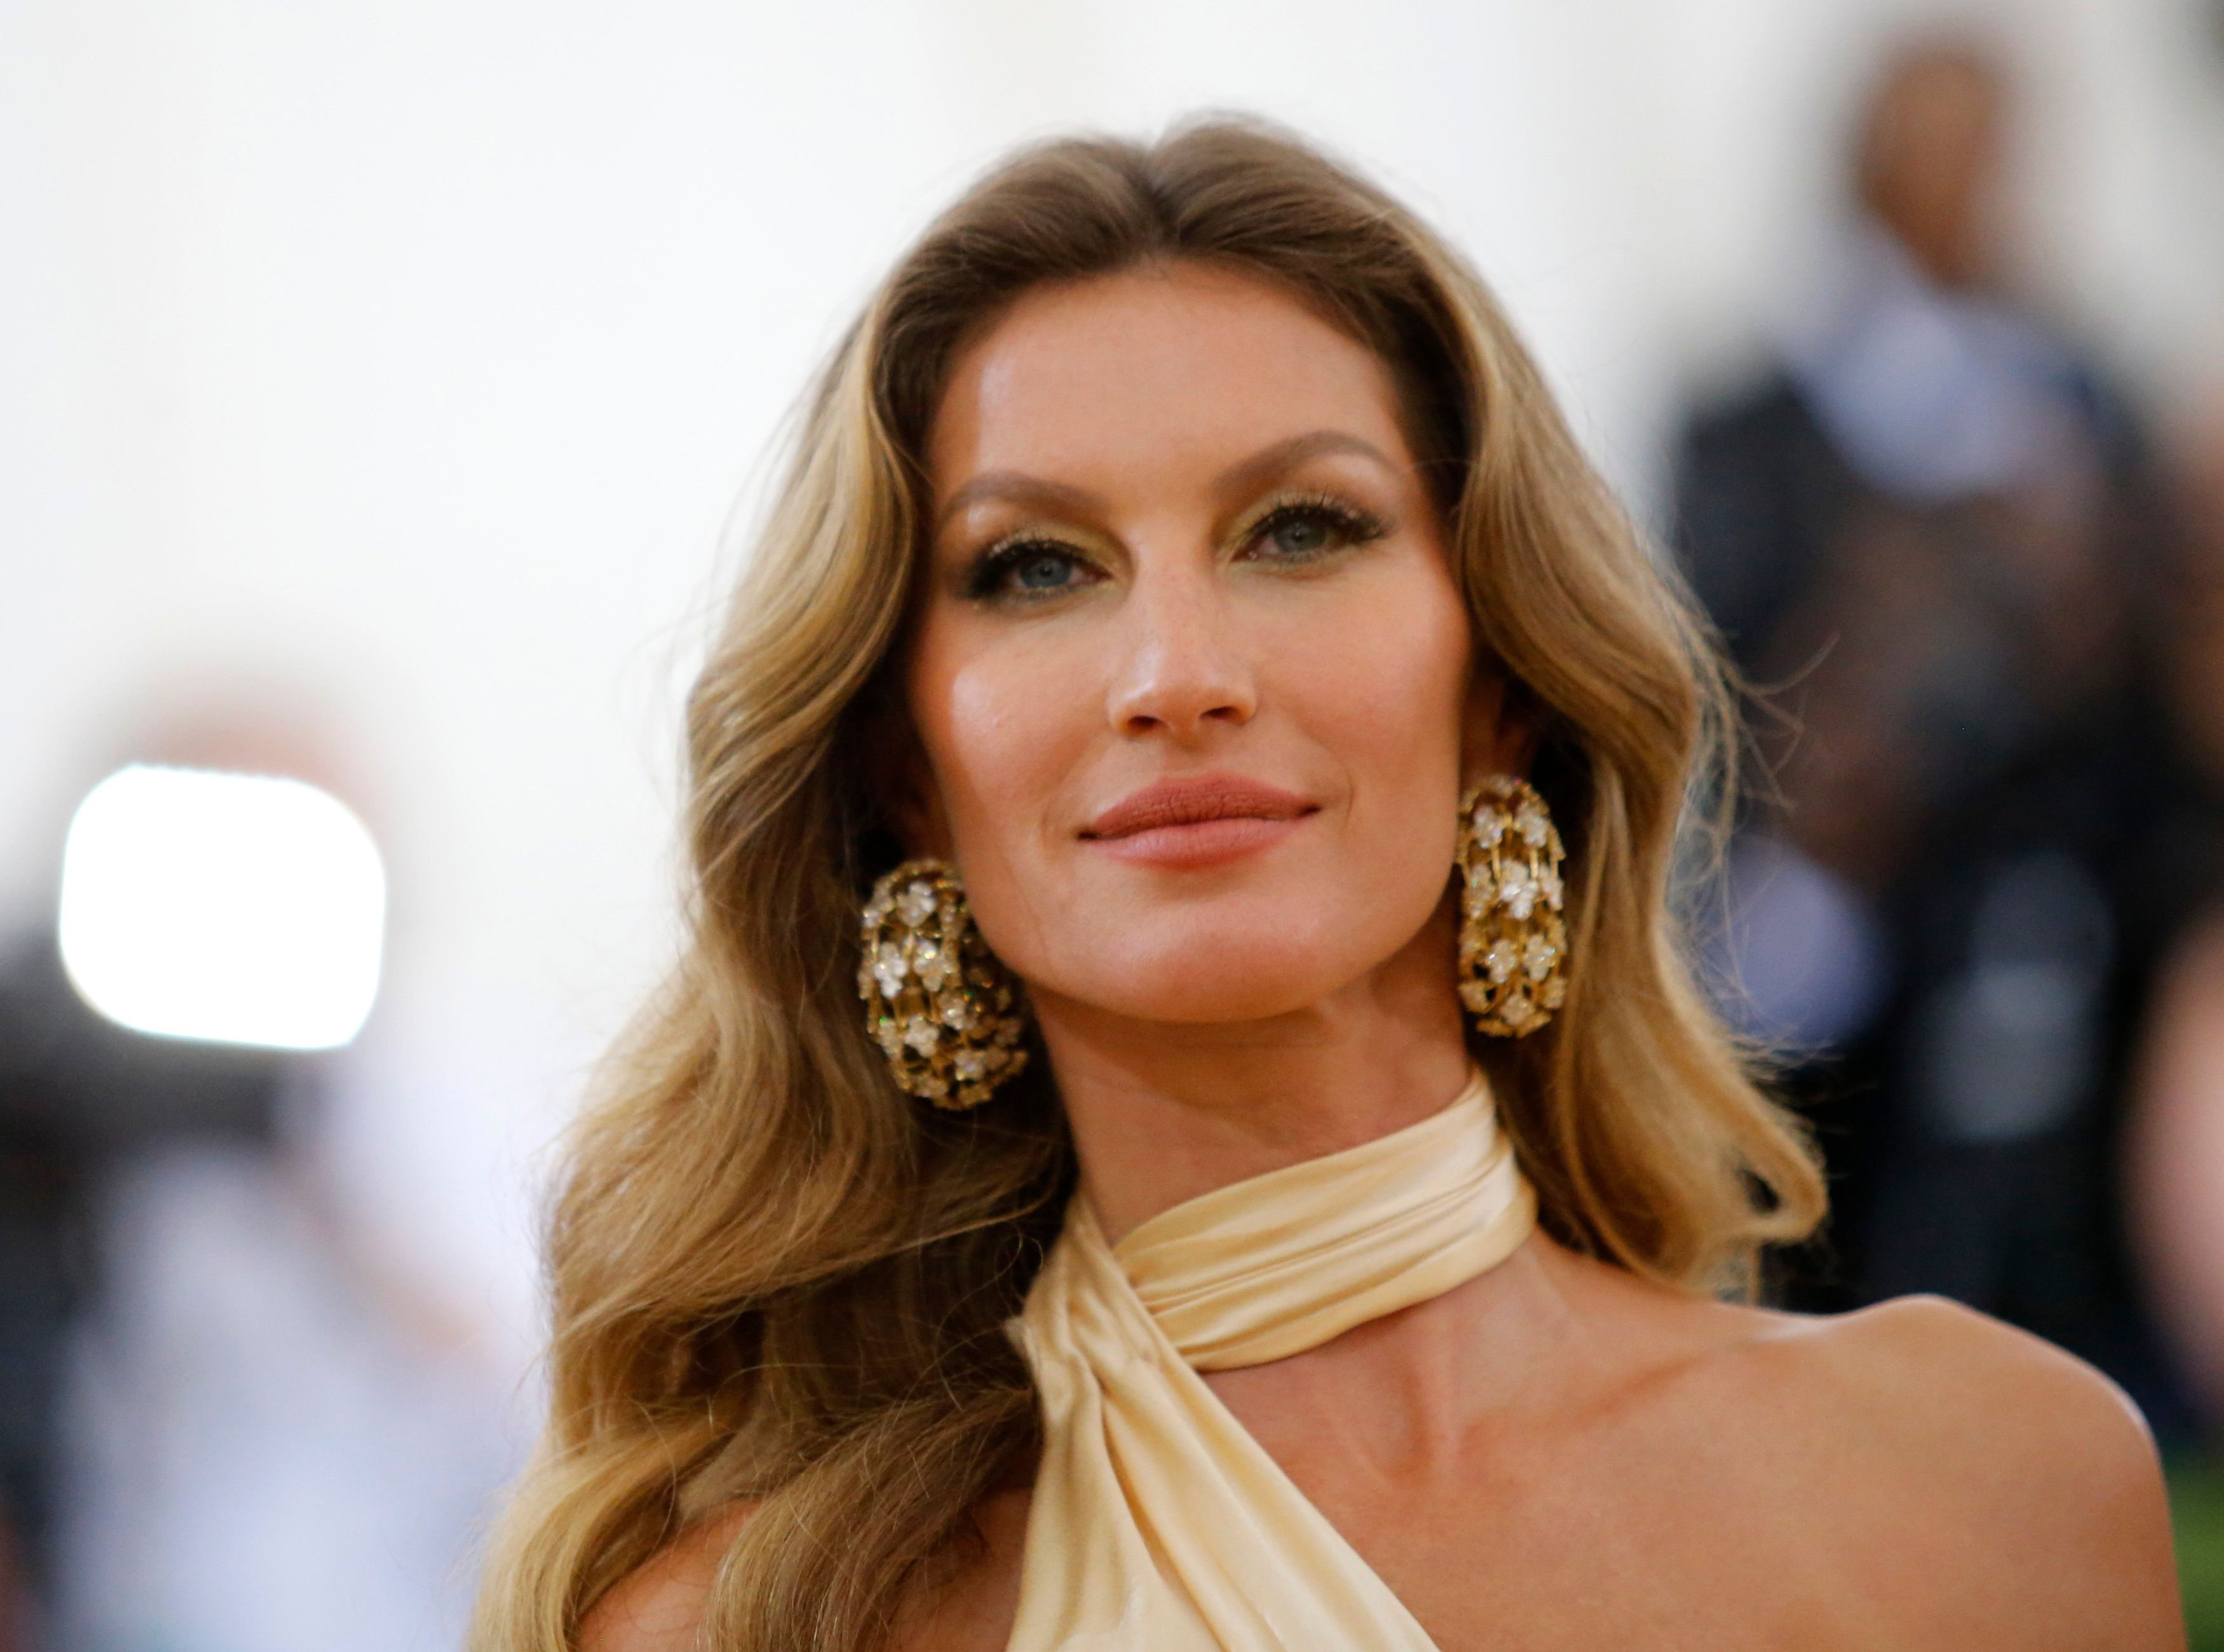 """Model Gisele Bundchen arrives at the Metropolitan Museum of Art Costume Institute Gala (Met Gala) to celebrate the opening of """"Heavenly Bodies: Fashion and the Catholic Imagination"""" in the Manhattan borough of New York, U.S., May 7, 2018. REUTERS/Eduardo Munoz"""